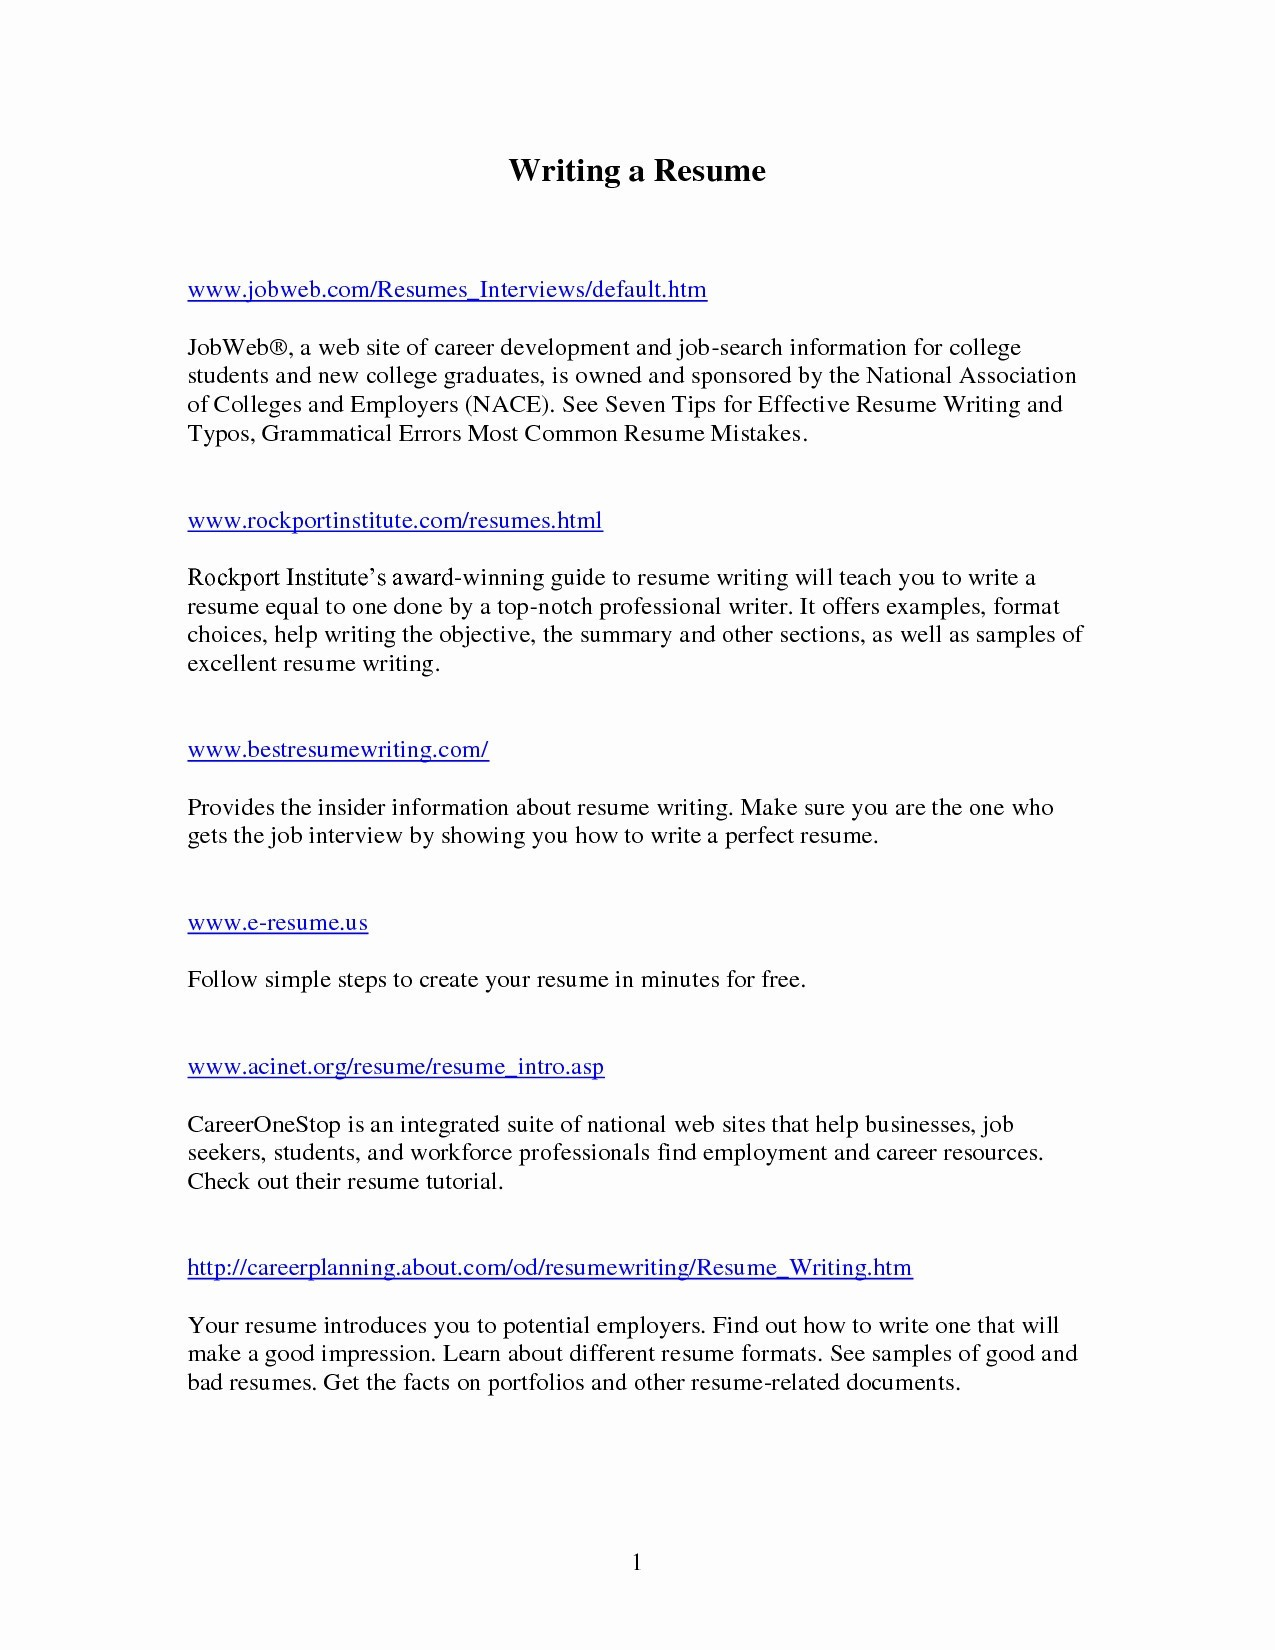 Resume Writing Services Dallas - Resume Writing Services Dallas